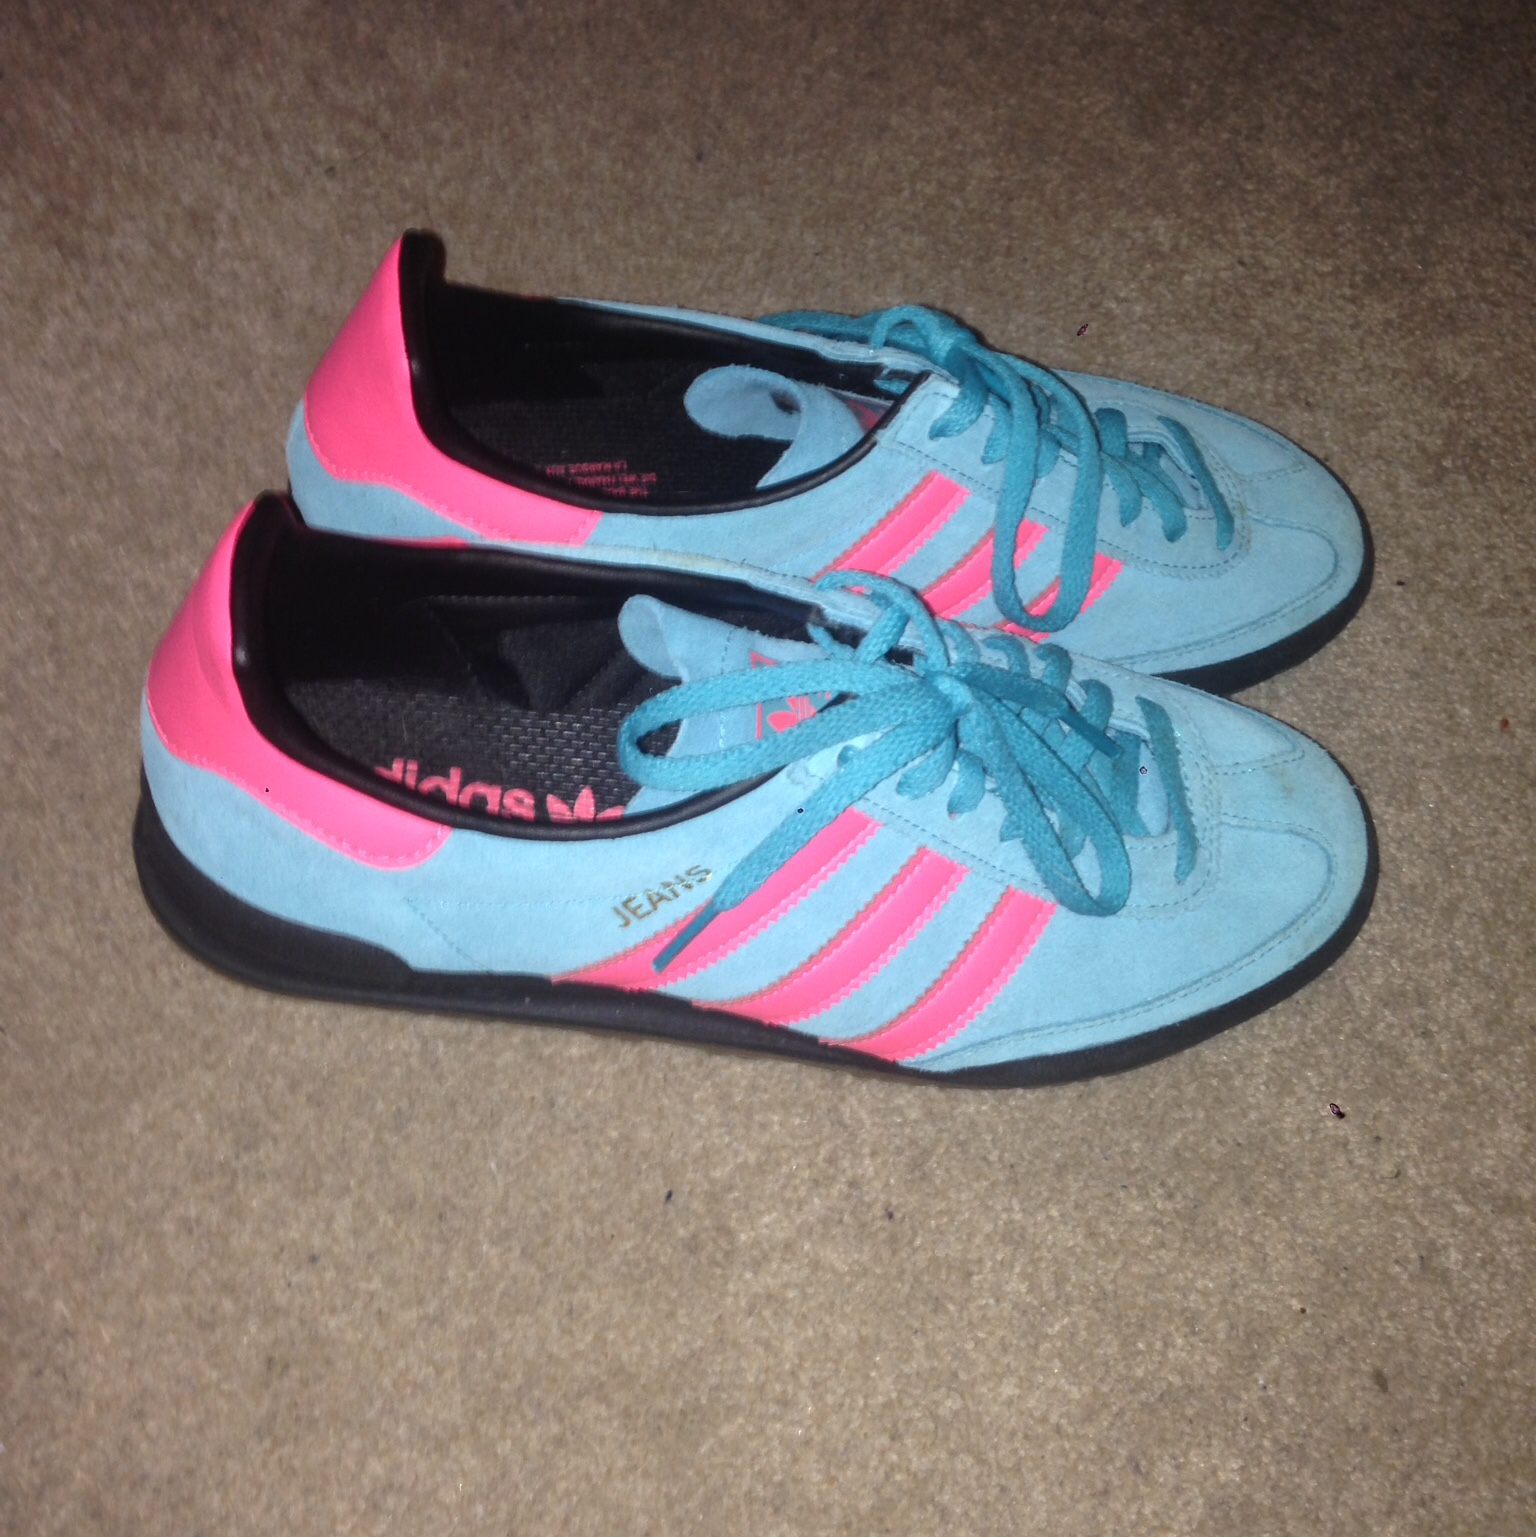 Adidas Jeans trainers size 6.5 light